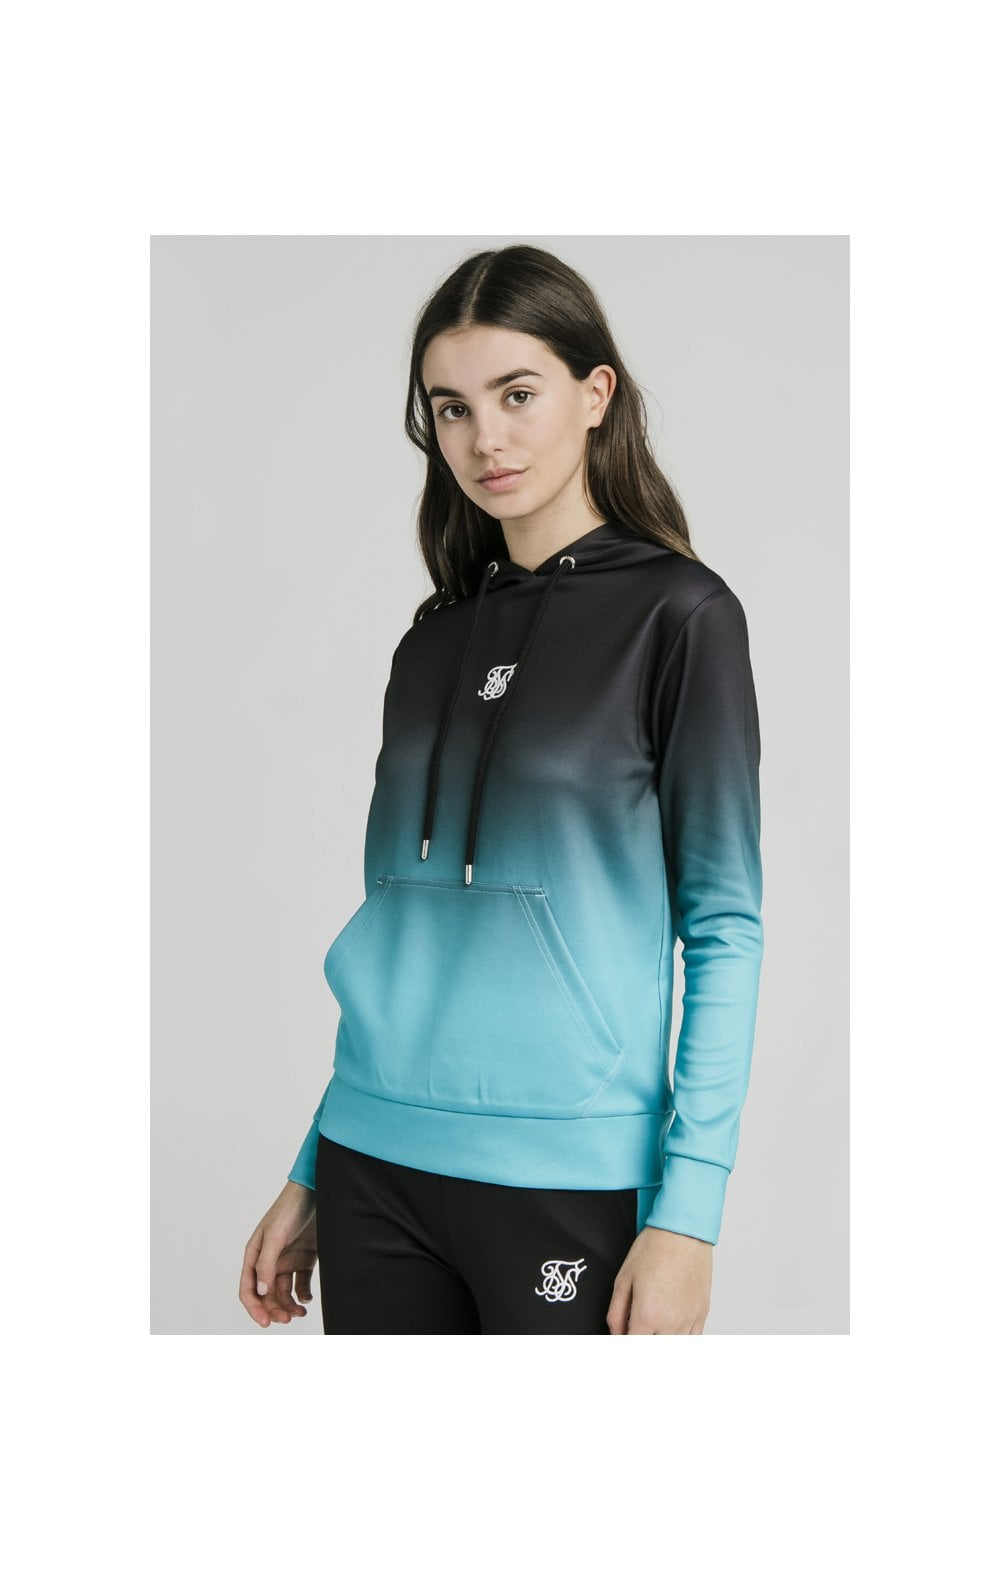 Load image into Gallery viewer, SikSilk Fade Overhead Hoodie - Black & Teal (5)